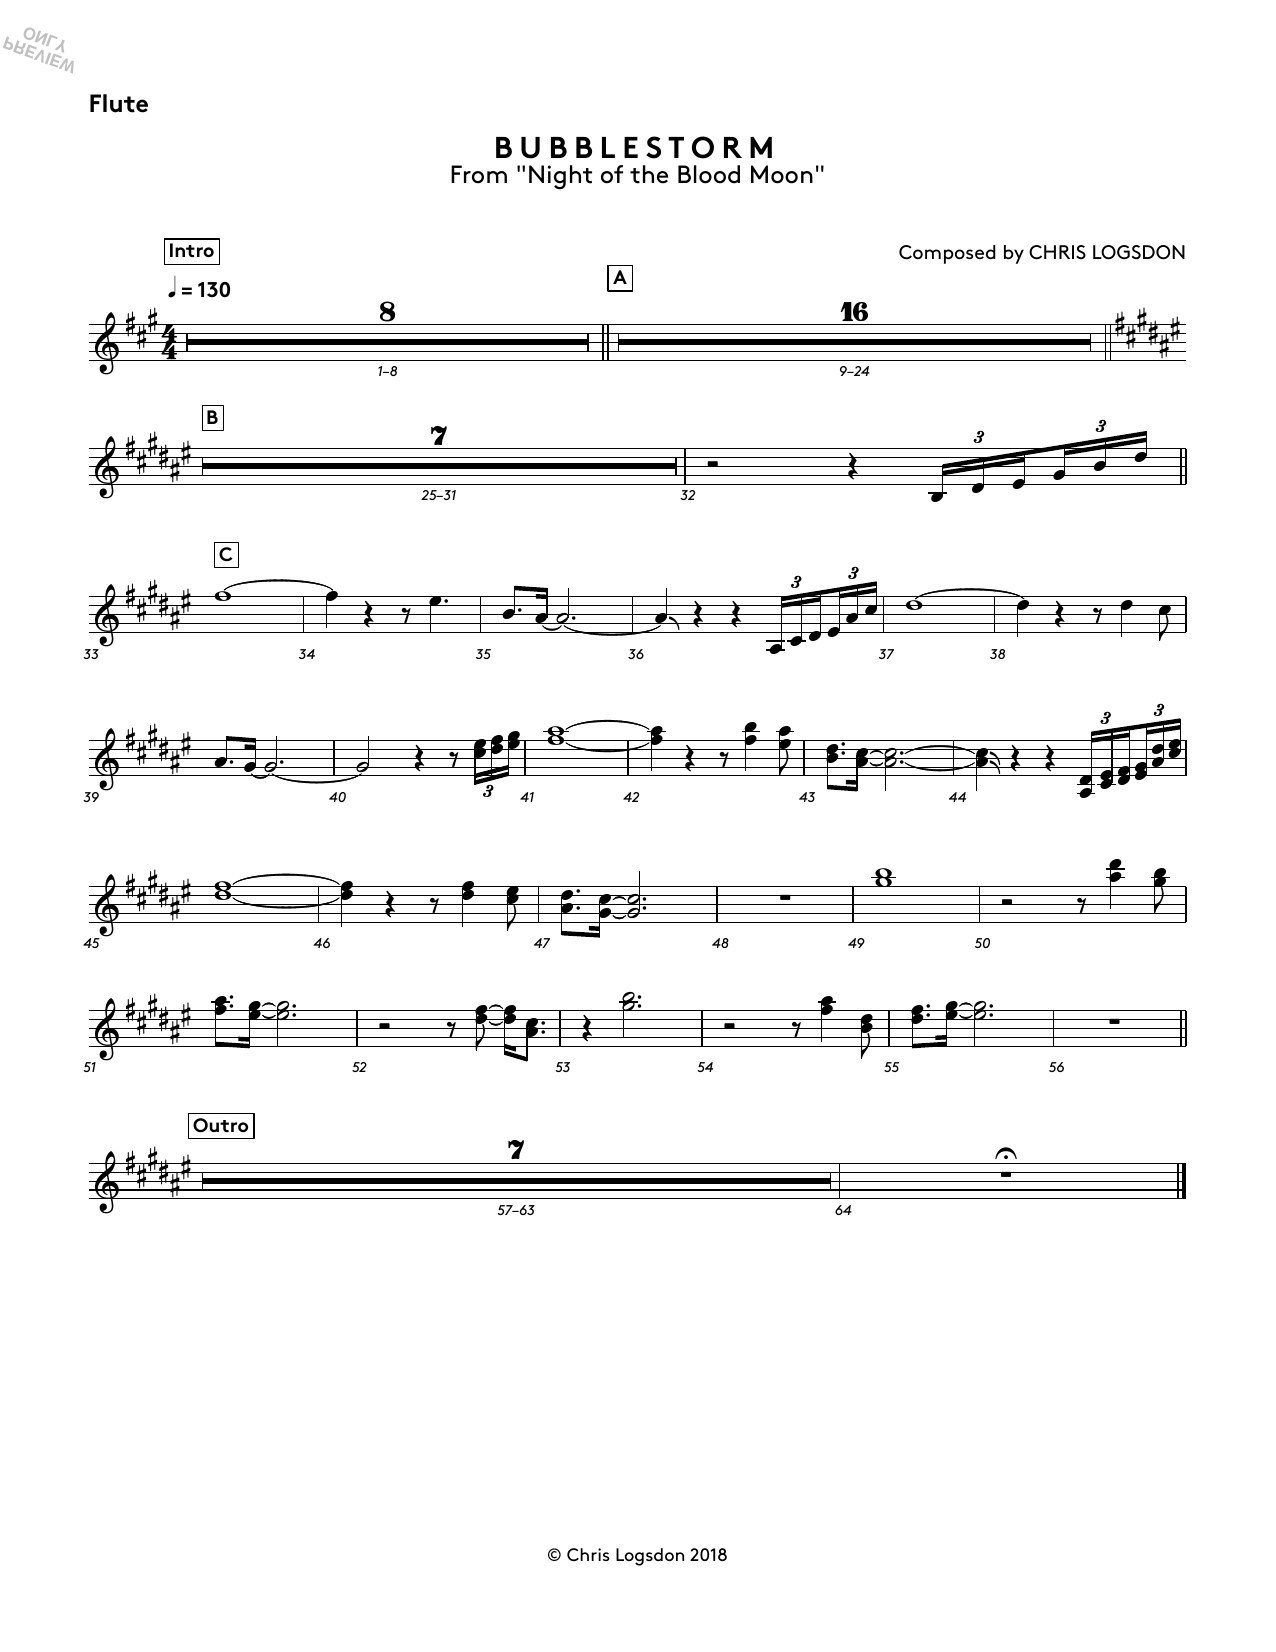 Bubblestorm (from Night of the Blood Moon) - Flute Sheet Music